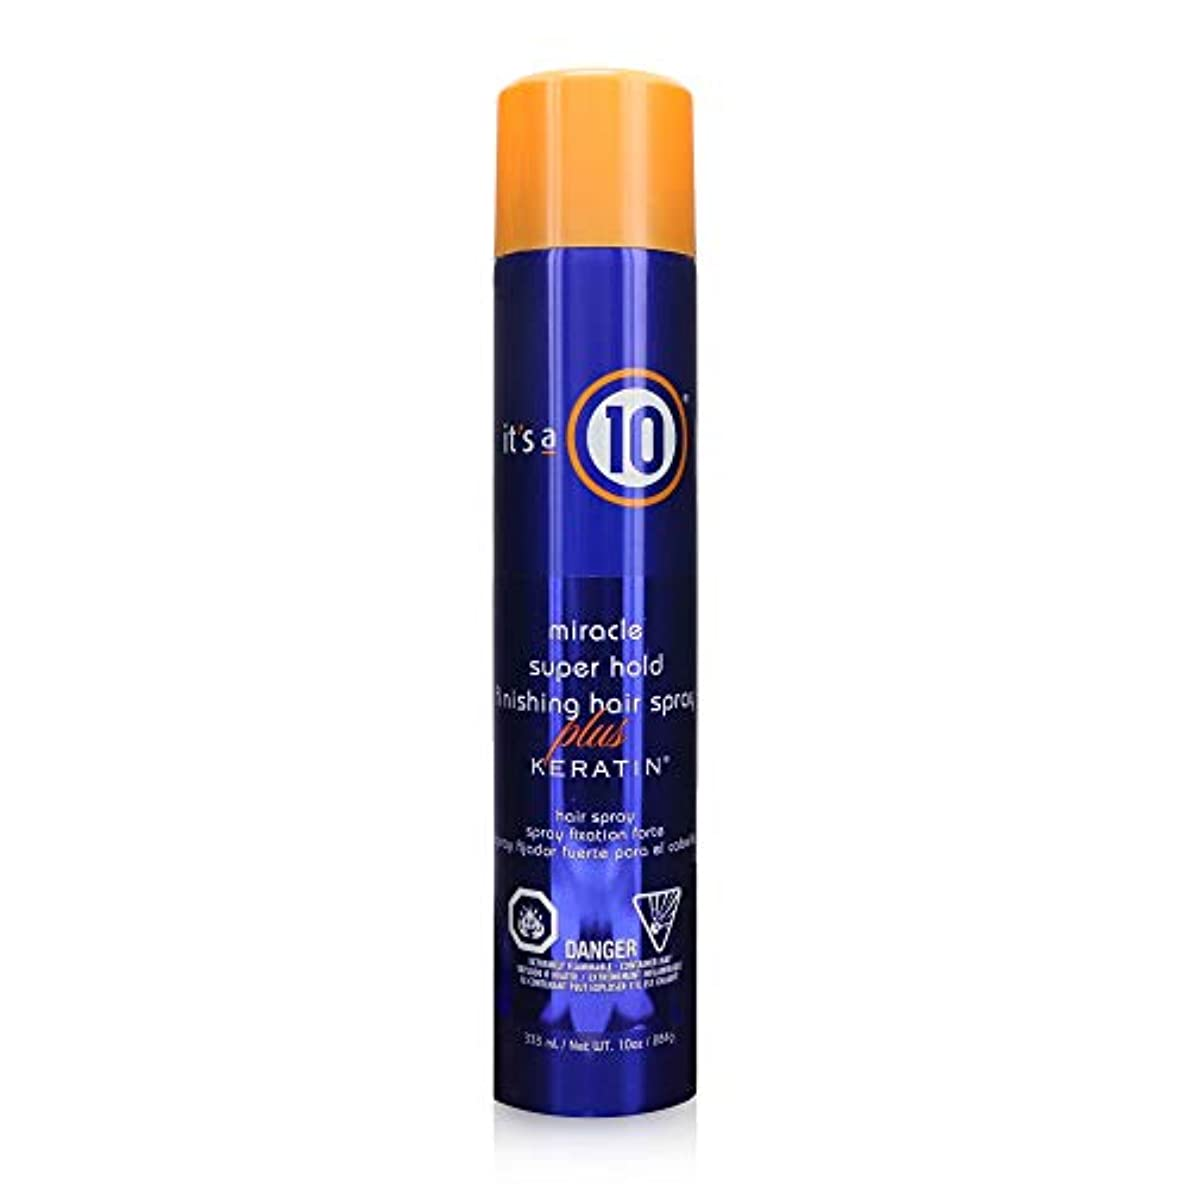 鯨現象オリエンタルby It's a 10 MIRACLE SUPER HOLD FINISHING SPRAY PLUS KERATIN 10 OZ by ITS A 10